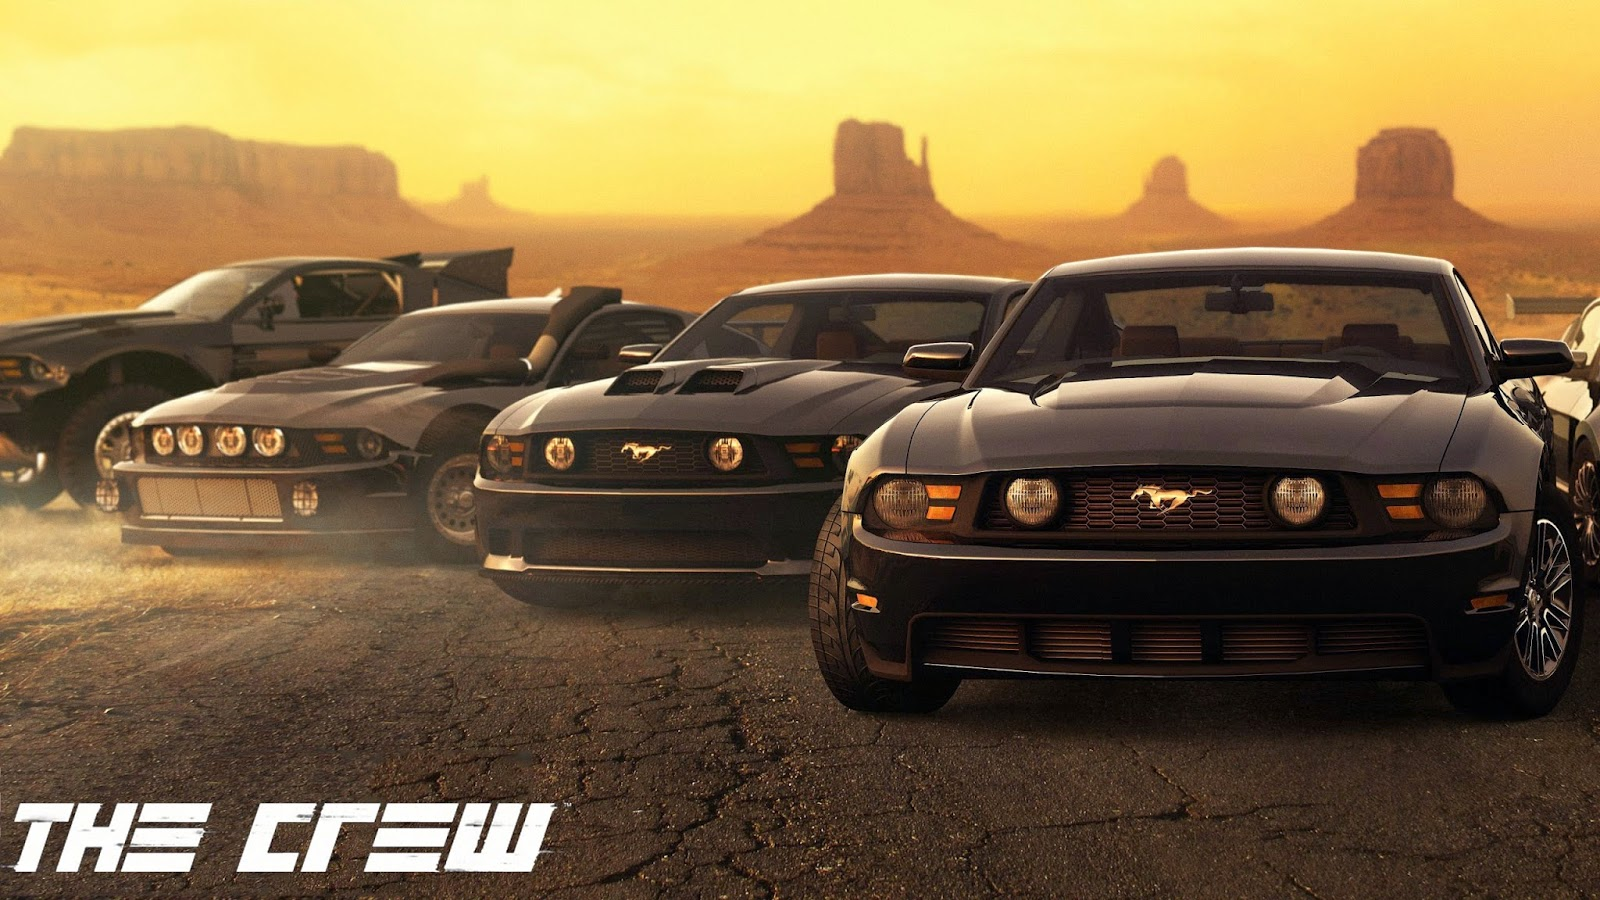 168 The Crew HD Wallpapers | Backgrounds - Wallpaper Abyss